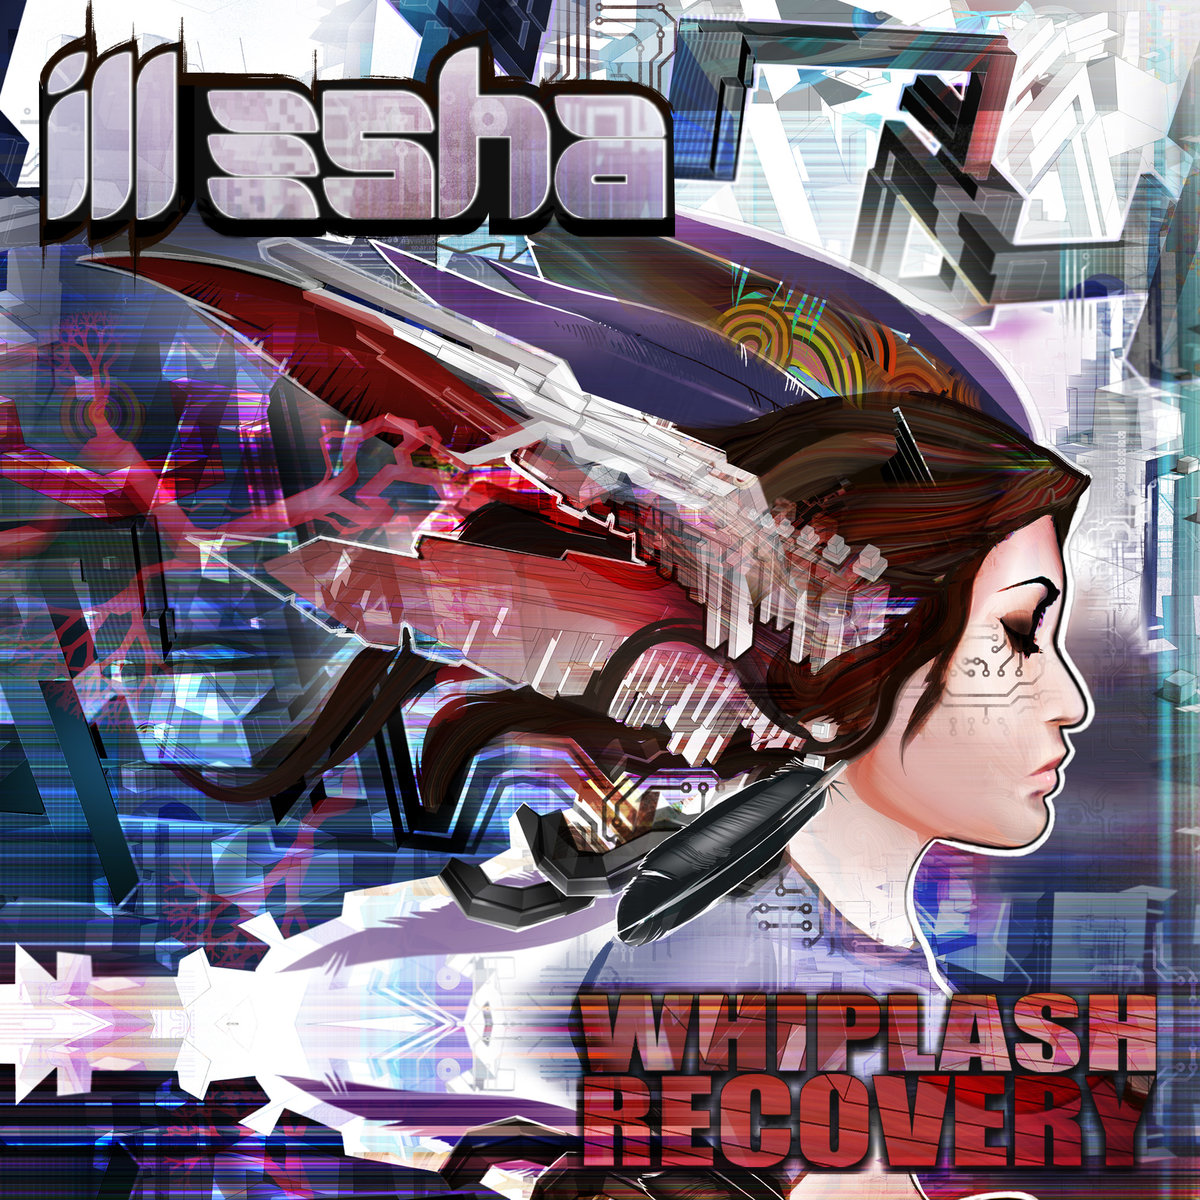 ill-esha - Whiplash Recovery (Radio Edit) @ 'Whiplash Recovery' album (california, denver)